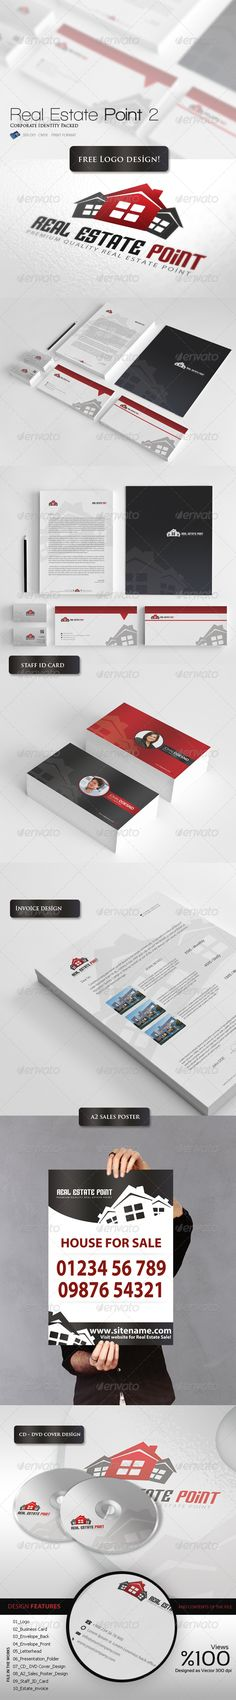 Real Estate Point - Corporate Identity Packed 7  #GraphicRiver            DESiGN FEATURES  300 DPI / CMYK   Fully editable & totally layered  .PSD files  Print format is set  You can integrate with unlimited color combinations  Font Download : .dafont /sf-archery-black.font  Screen mockup : graphicriver /item/stationery-branding-mockup/2017868  DESiGN FiLE  01_Logo / Working size: 2524 px – 1308 px  02_Business_Card / Working size: 9.5×5.7 cm Print Dimensions  03_Envelope_Back / Working…